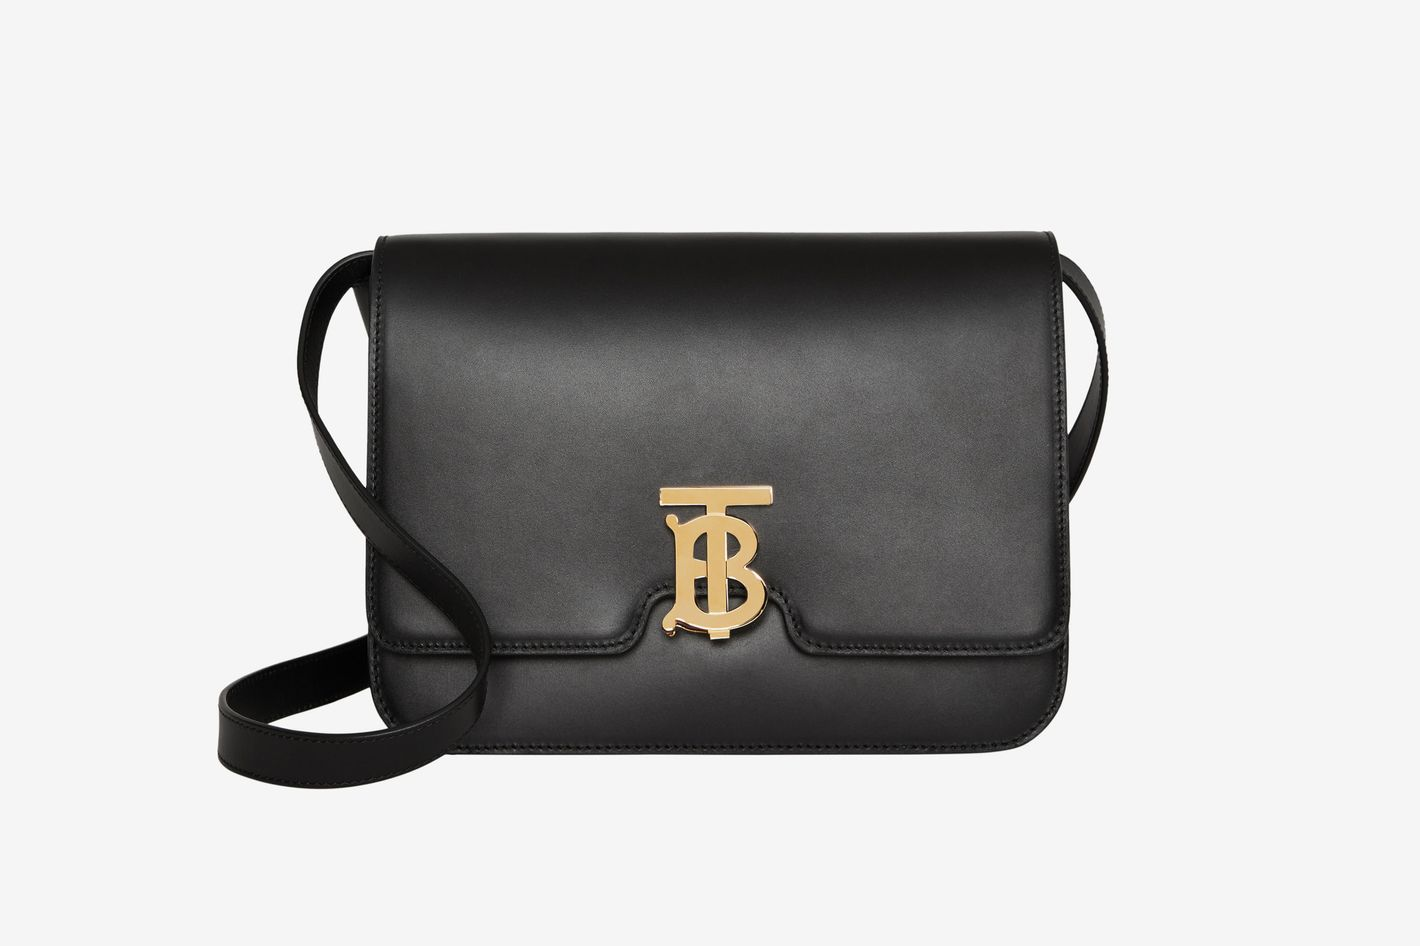 See Burberry s TB Bag Designed by Riccardo Tisci f93f72d15406b